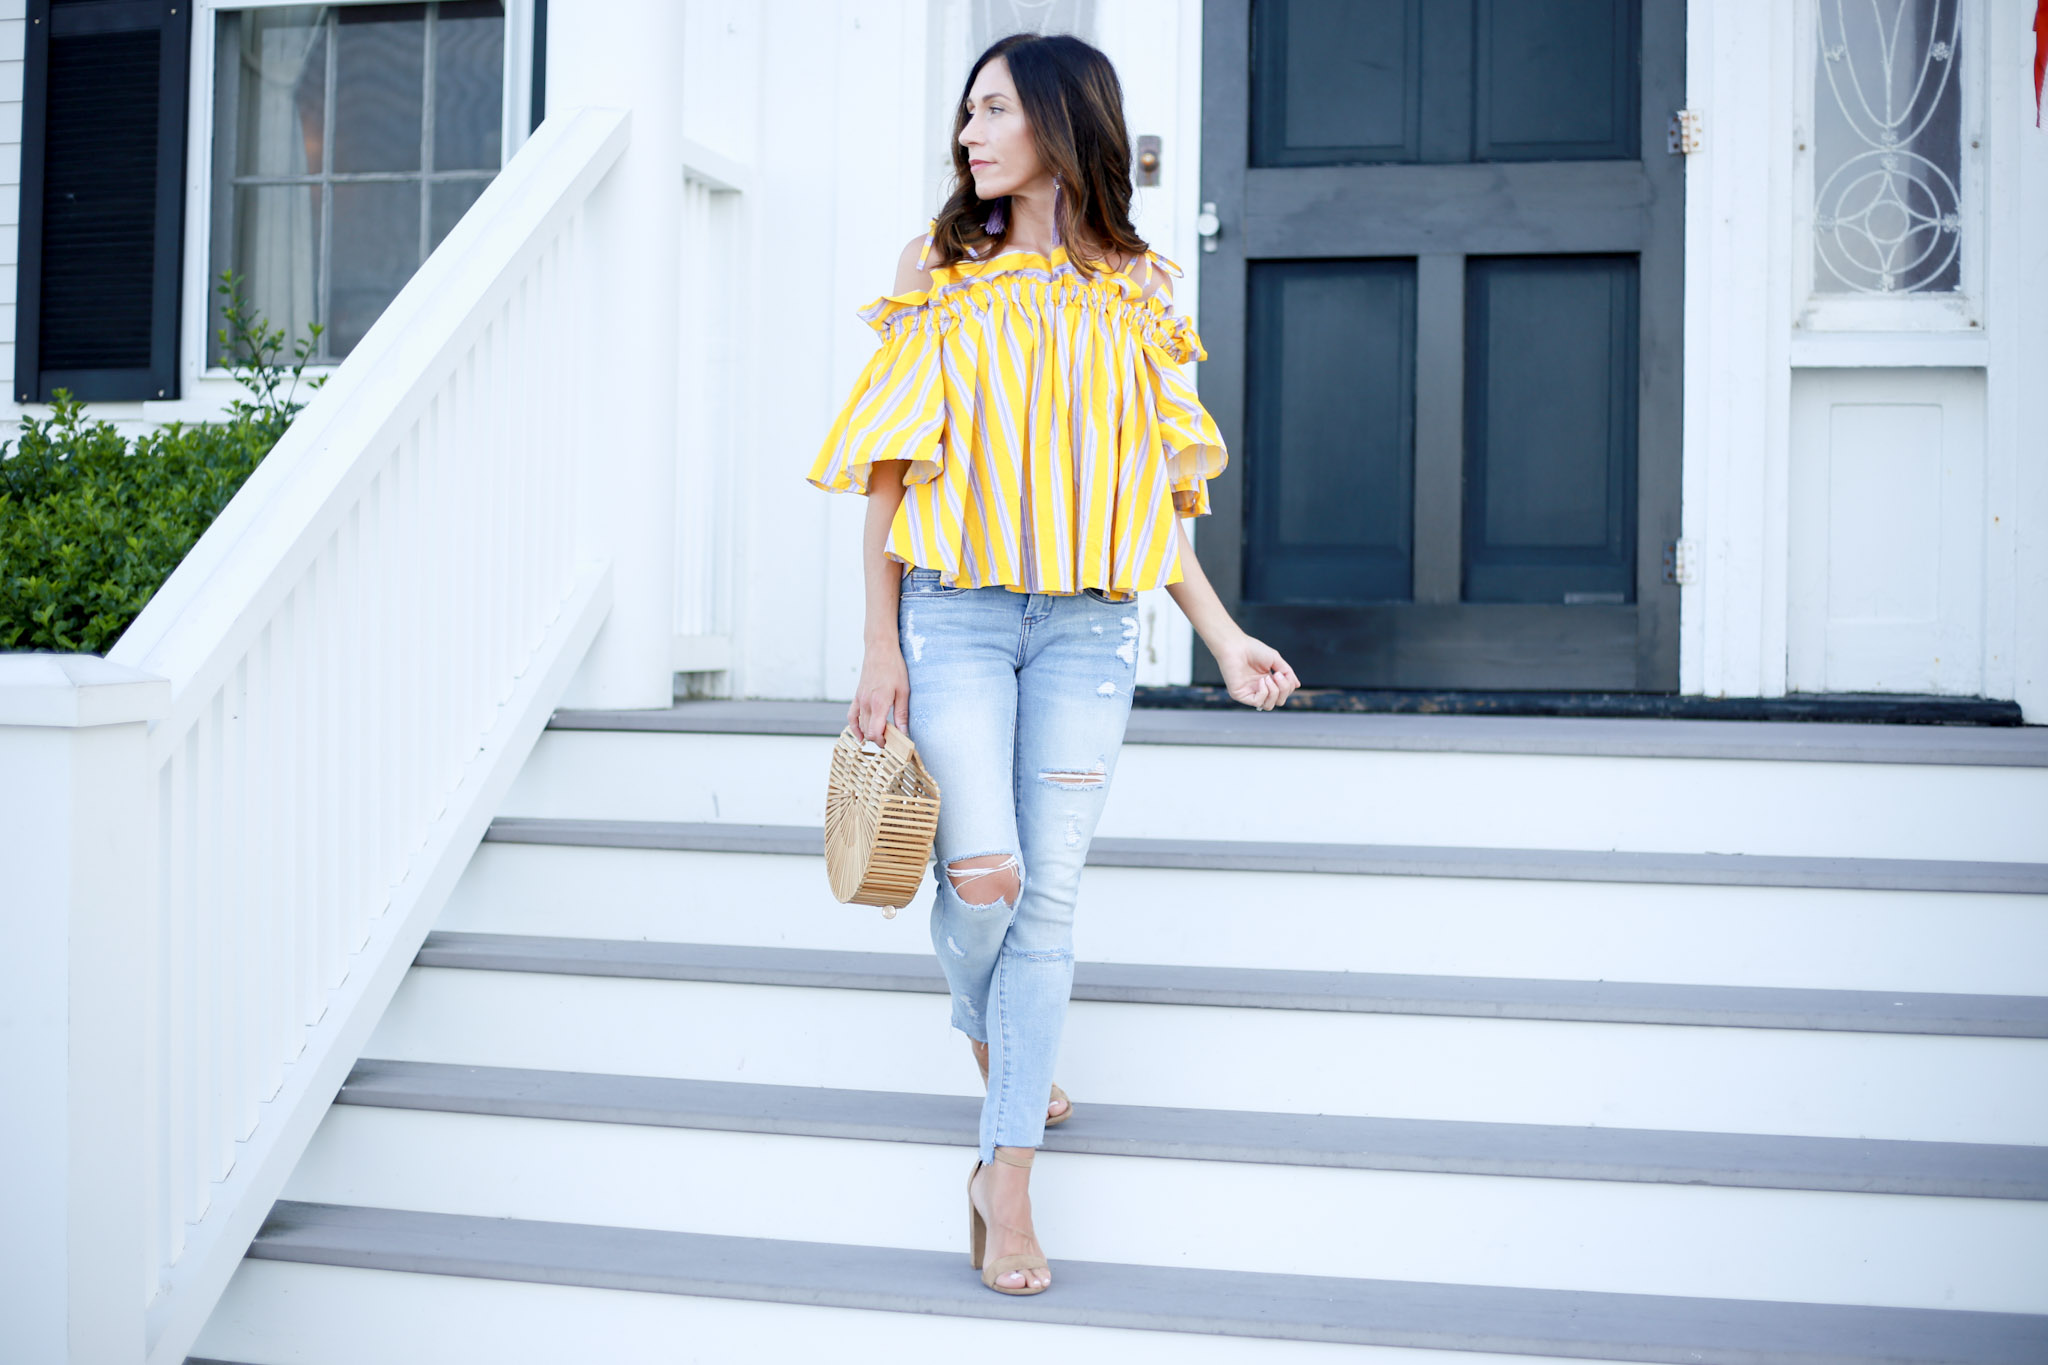 My favorite off the shoulder top for summer.